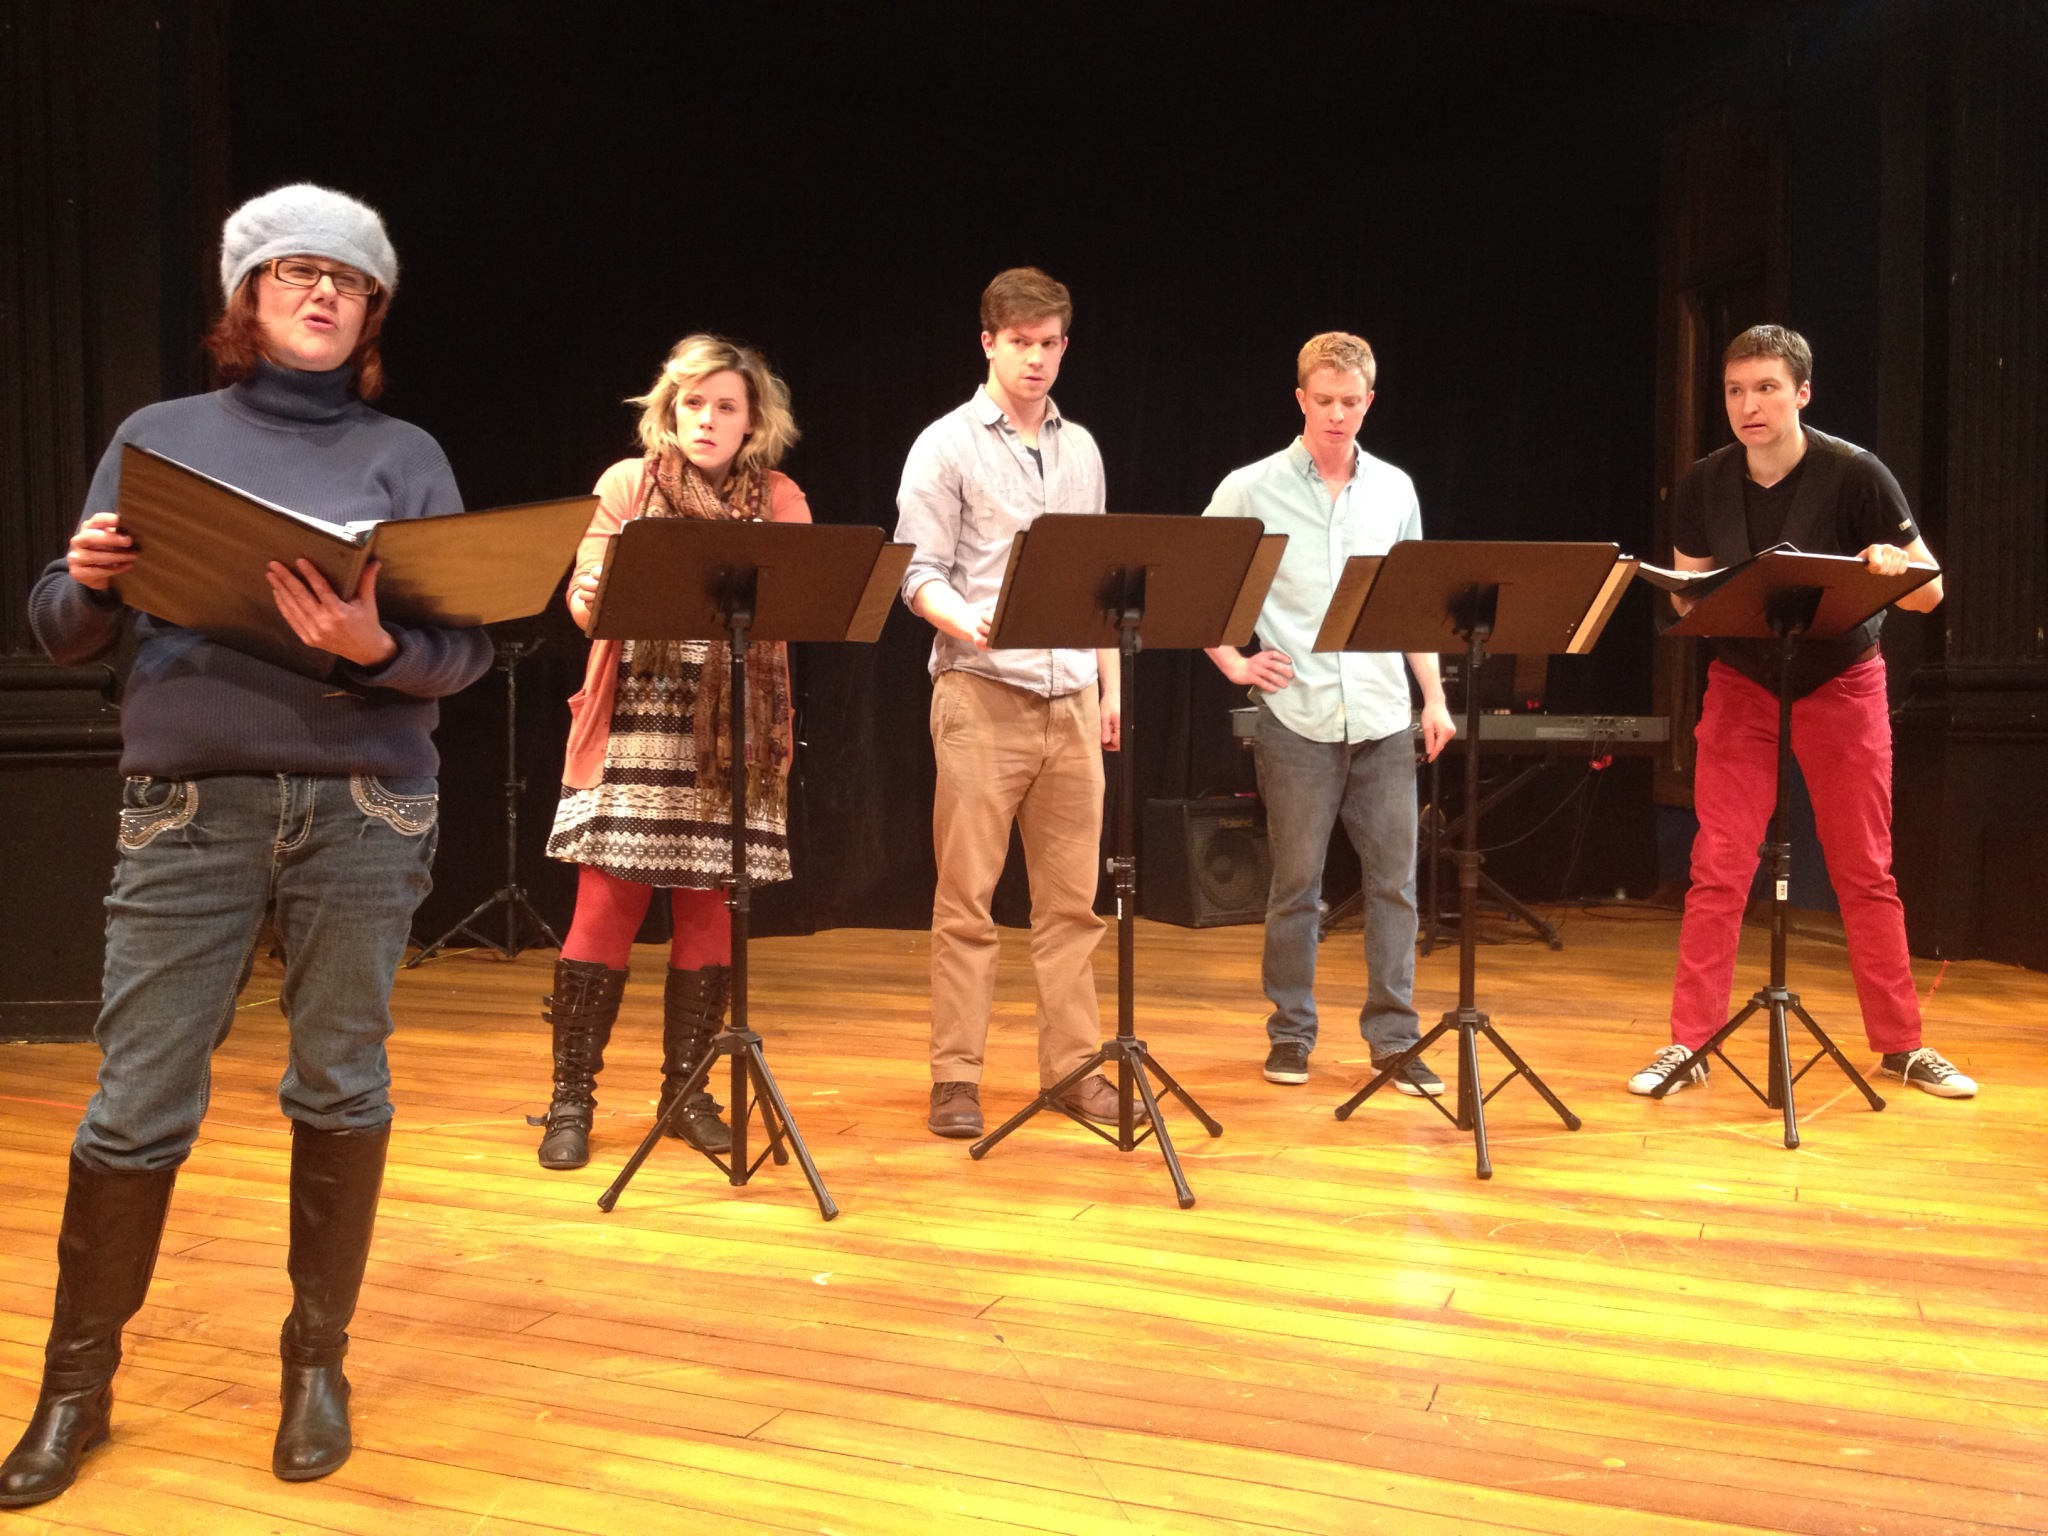 Staged reading of the new musical  Milo at the Movies  at the Aurora Theatre.  Directed by Alexander Greenfield; Book by Tom Diggs; Music & Lyrics by Mark Gaylord; Music Direction by Ann-Carol Pence.